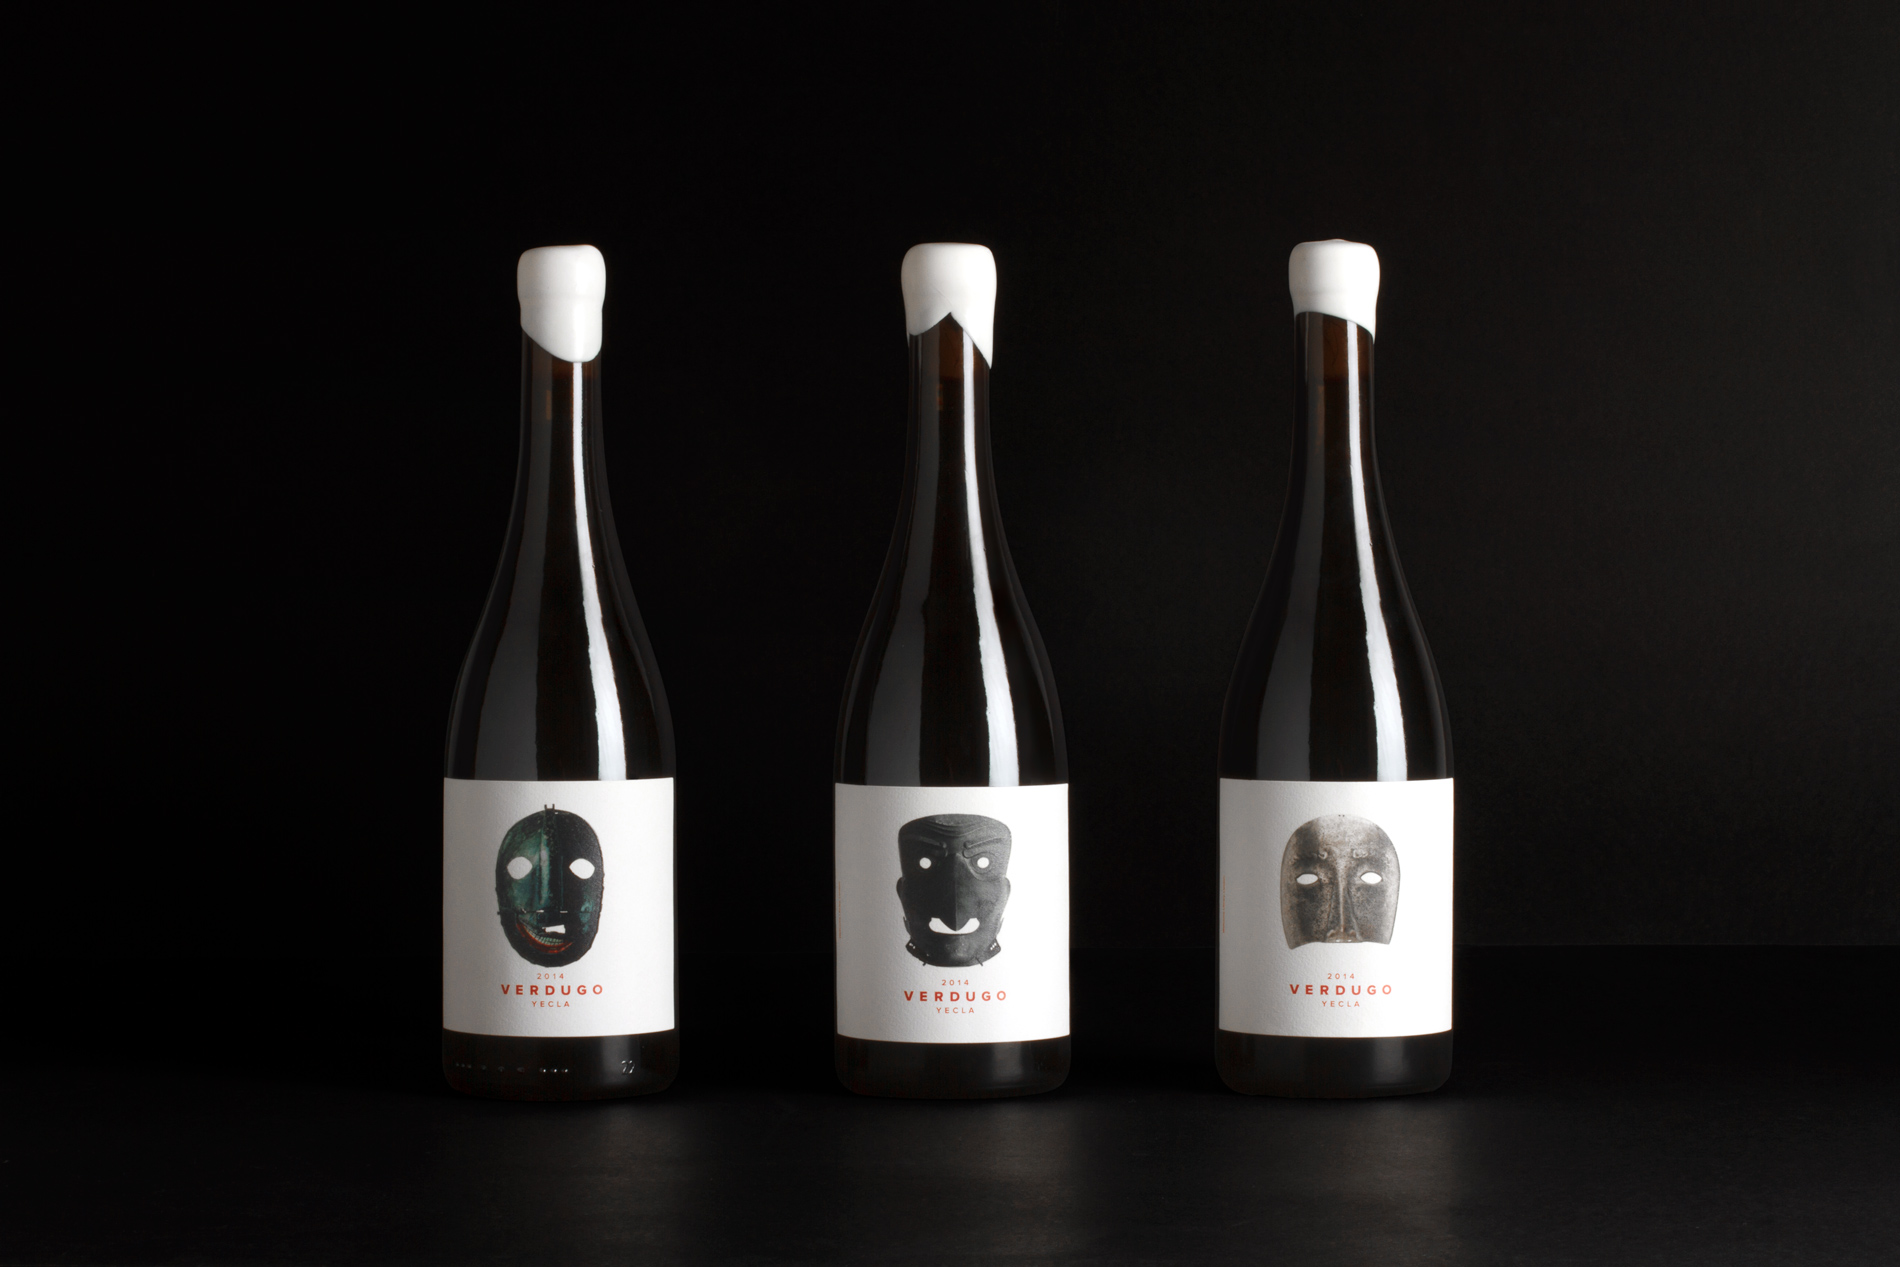 Packaging botella de vino tinto